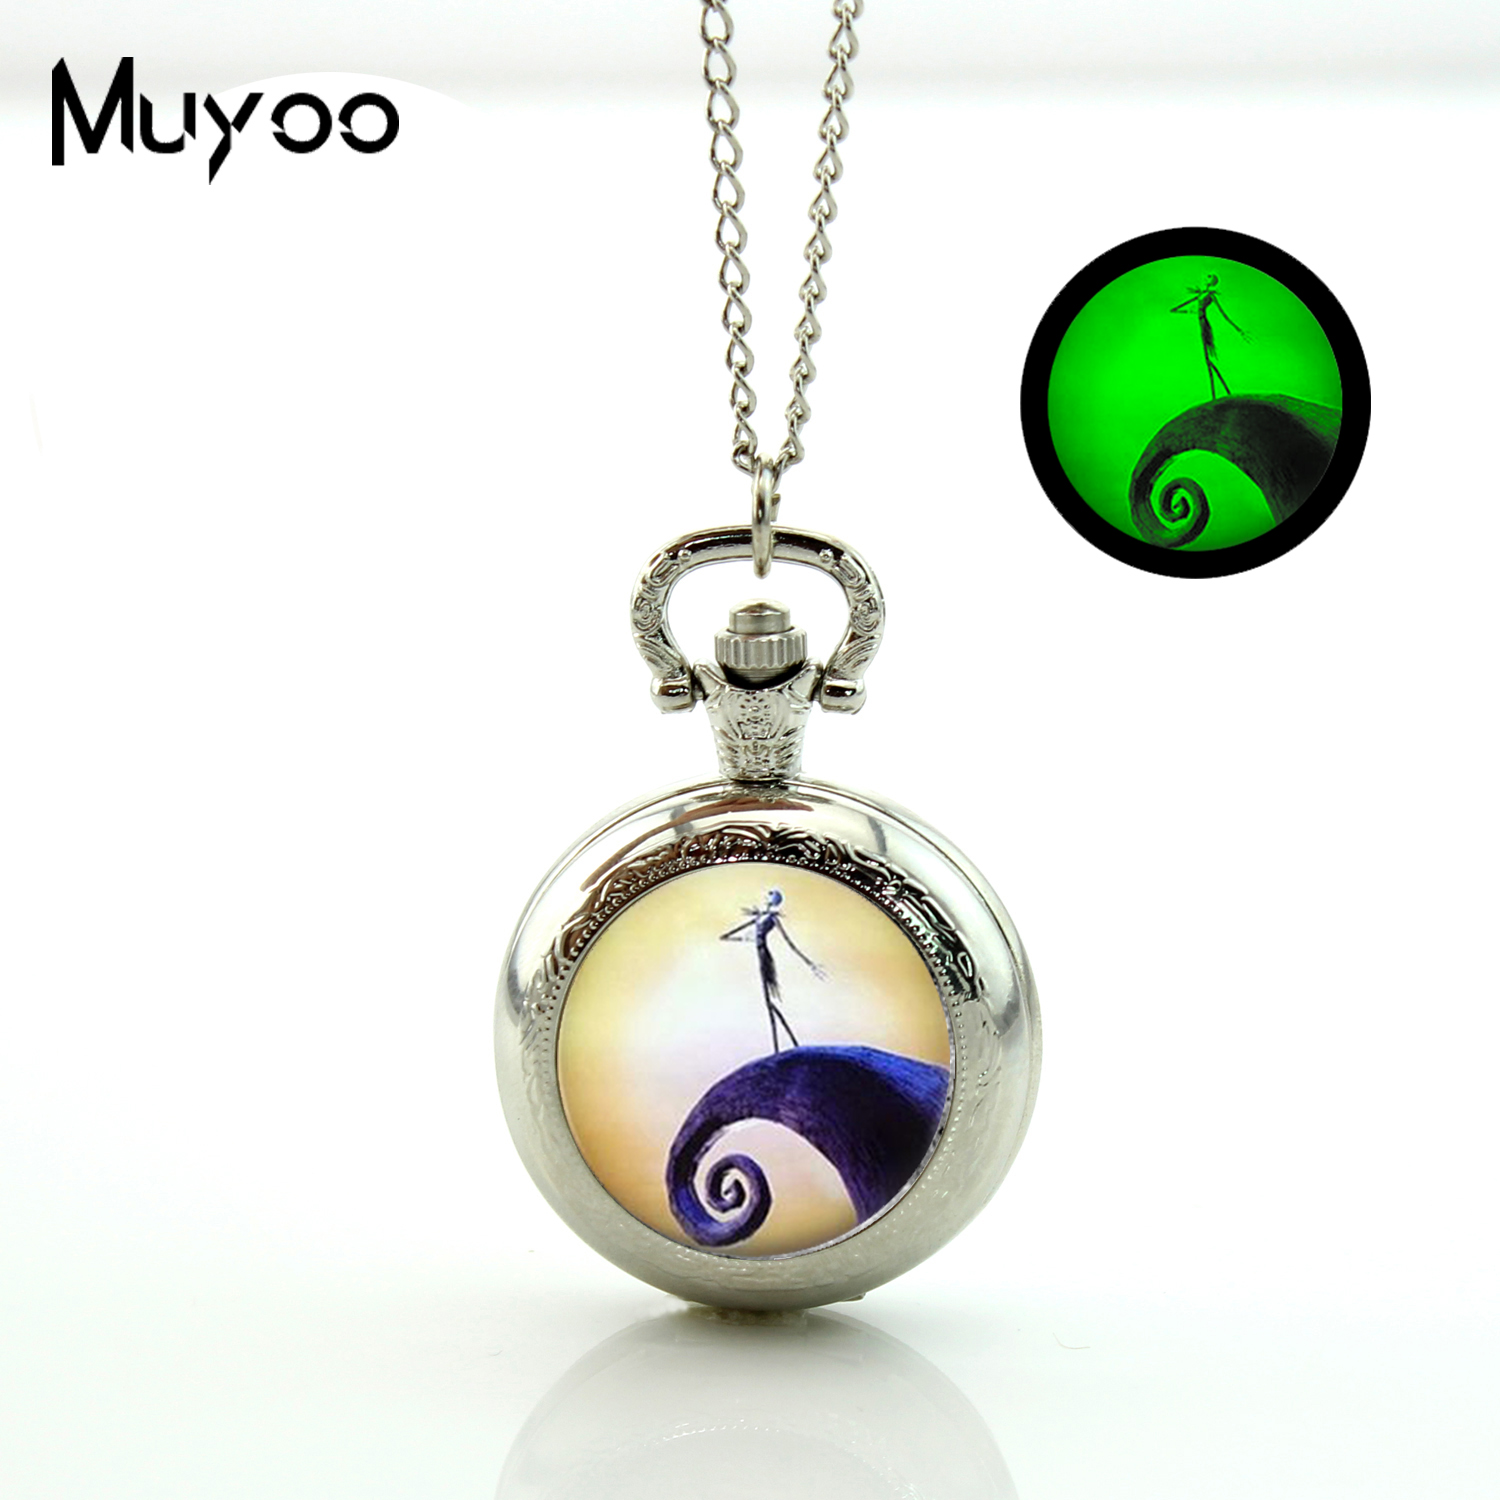 2017 New Nightmare Before Christmas Glowing Pocket watch Pendant Vintage Bronze Necklace Glow in the dark Jewelry Gifts Men